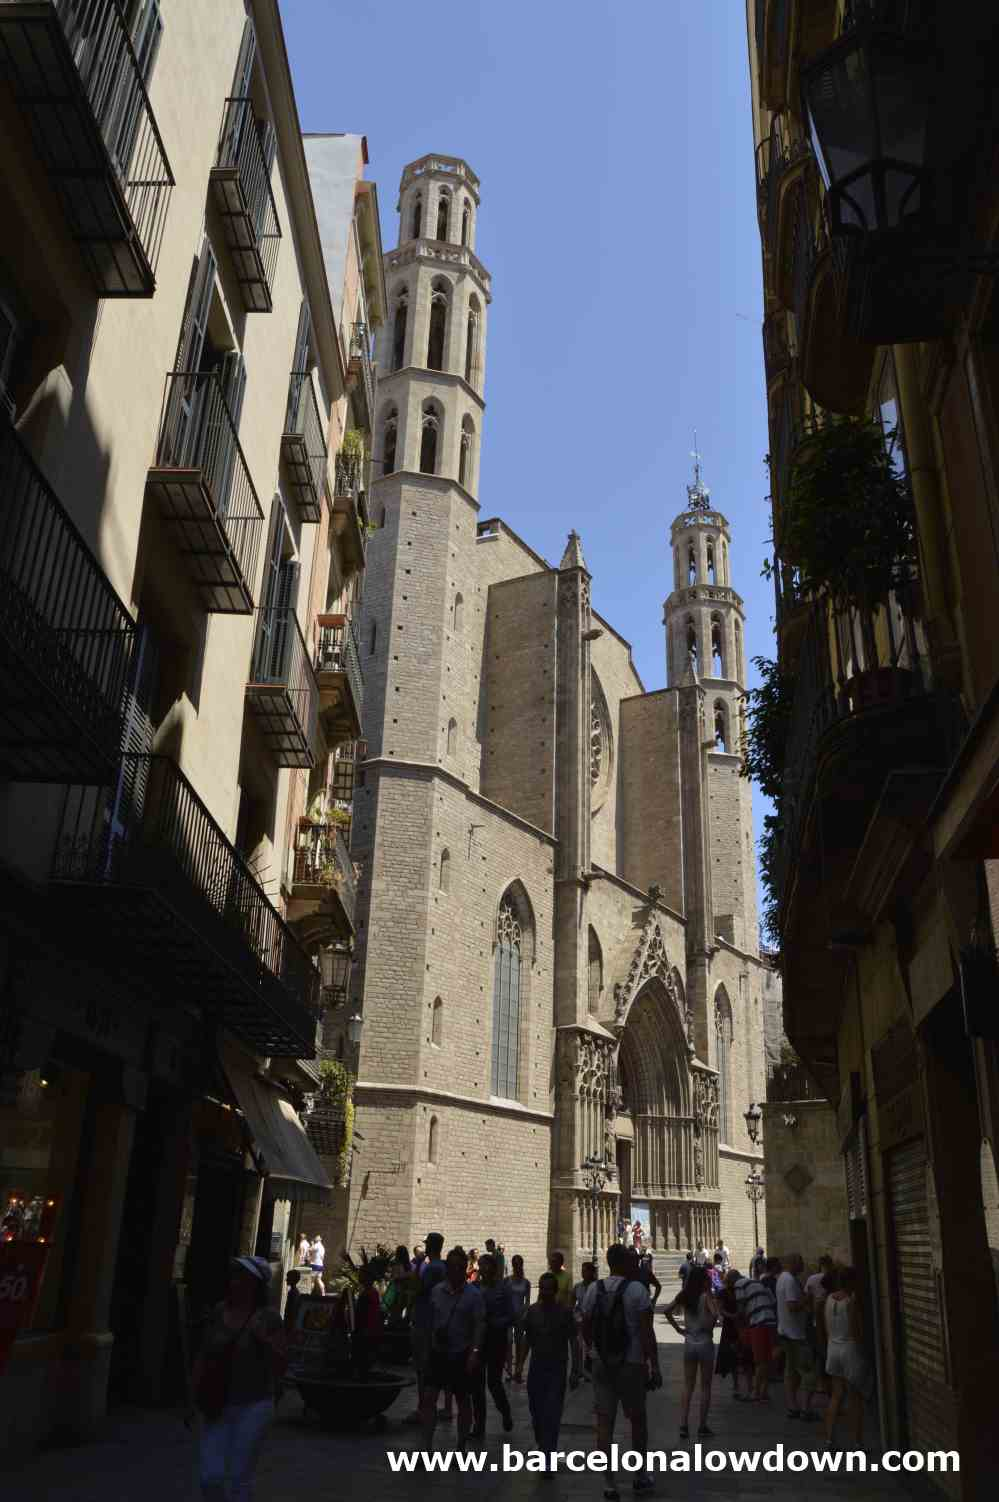 The main entrance to the Cathedral of the sea Barcelona